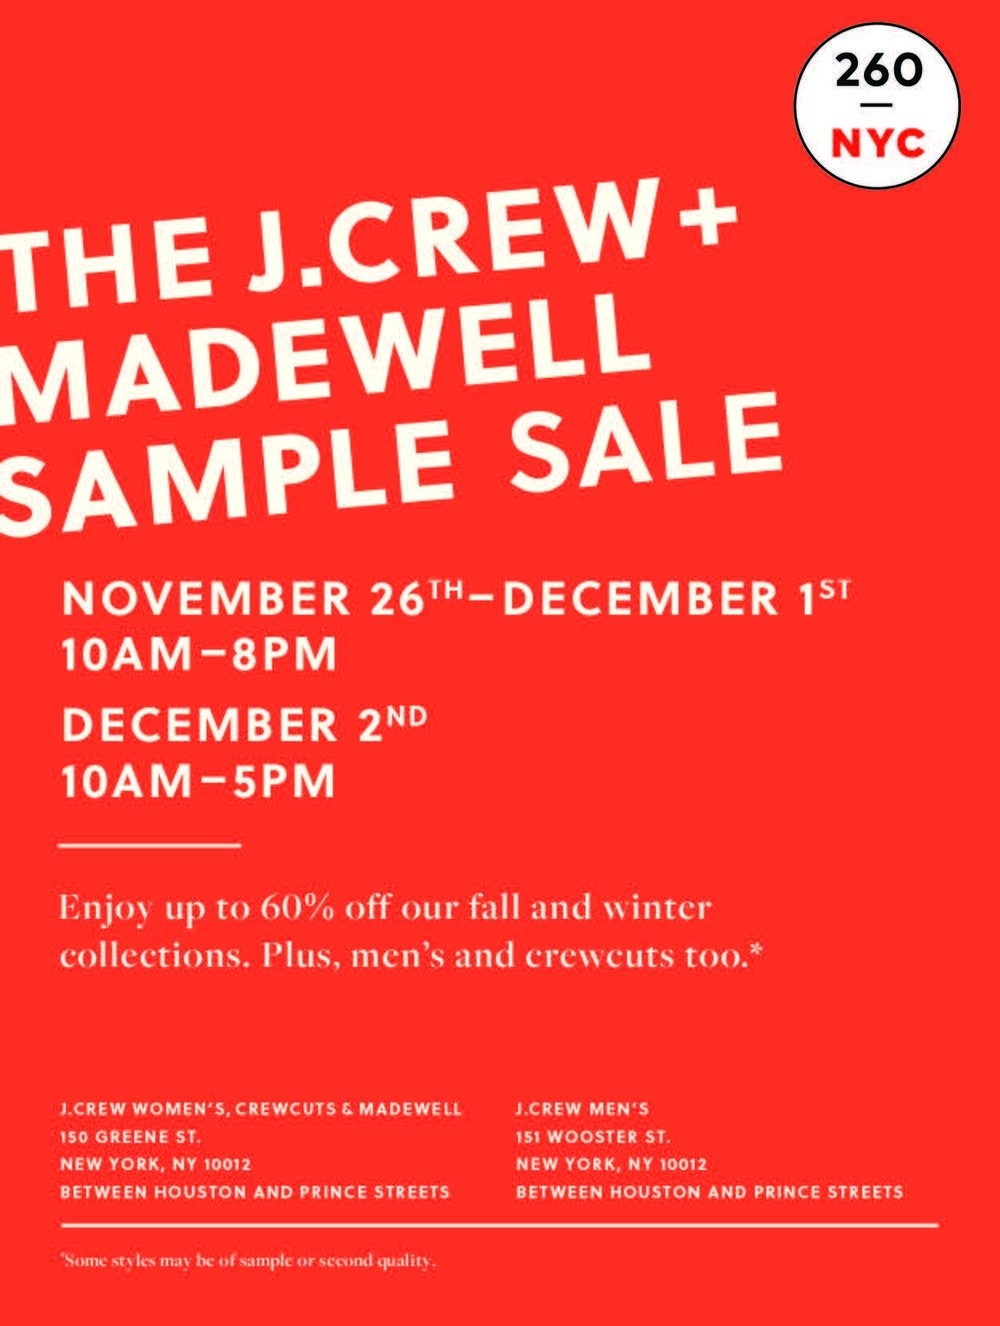 J.crew + Madewell Sample Sale — 260 Nyc pertaining to Men's Sample Sales Nyc 58680